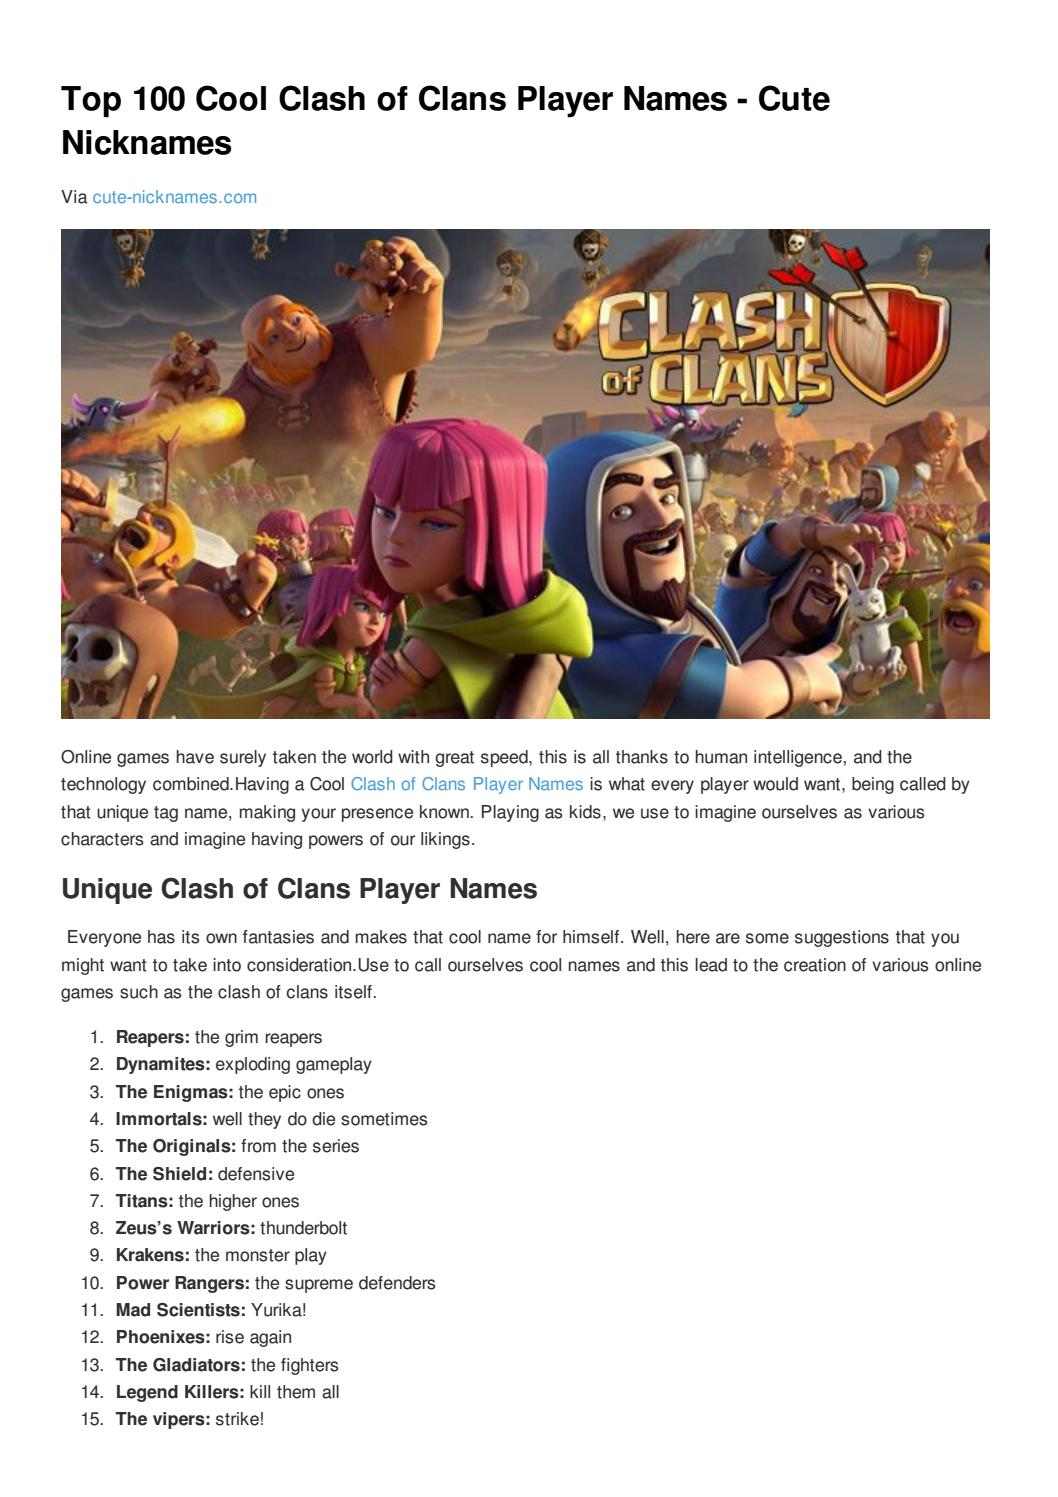 Top 100 Cool Clash Of Clans Player Names Cute Nicknames By Cute Nicknames Issuu